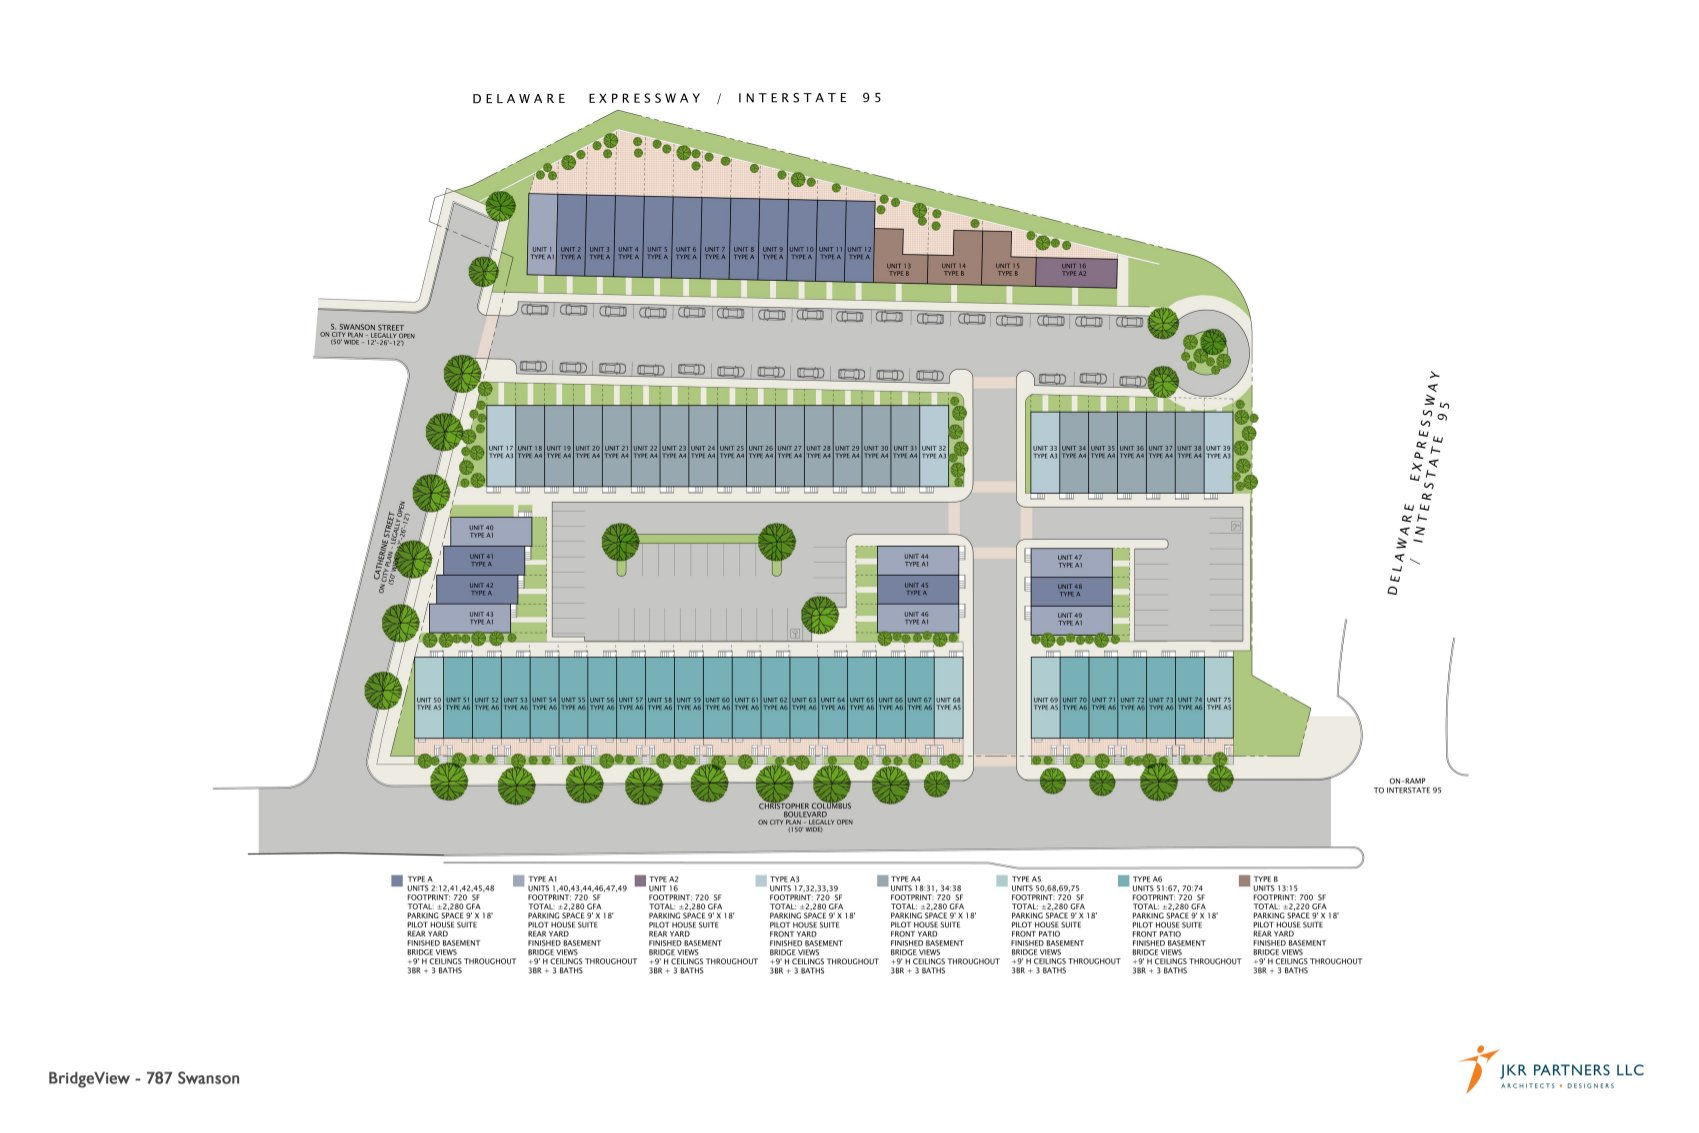 Site plan by and image courtesy of JKR Partners